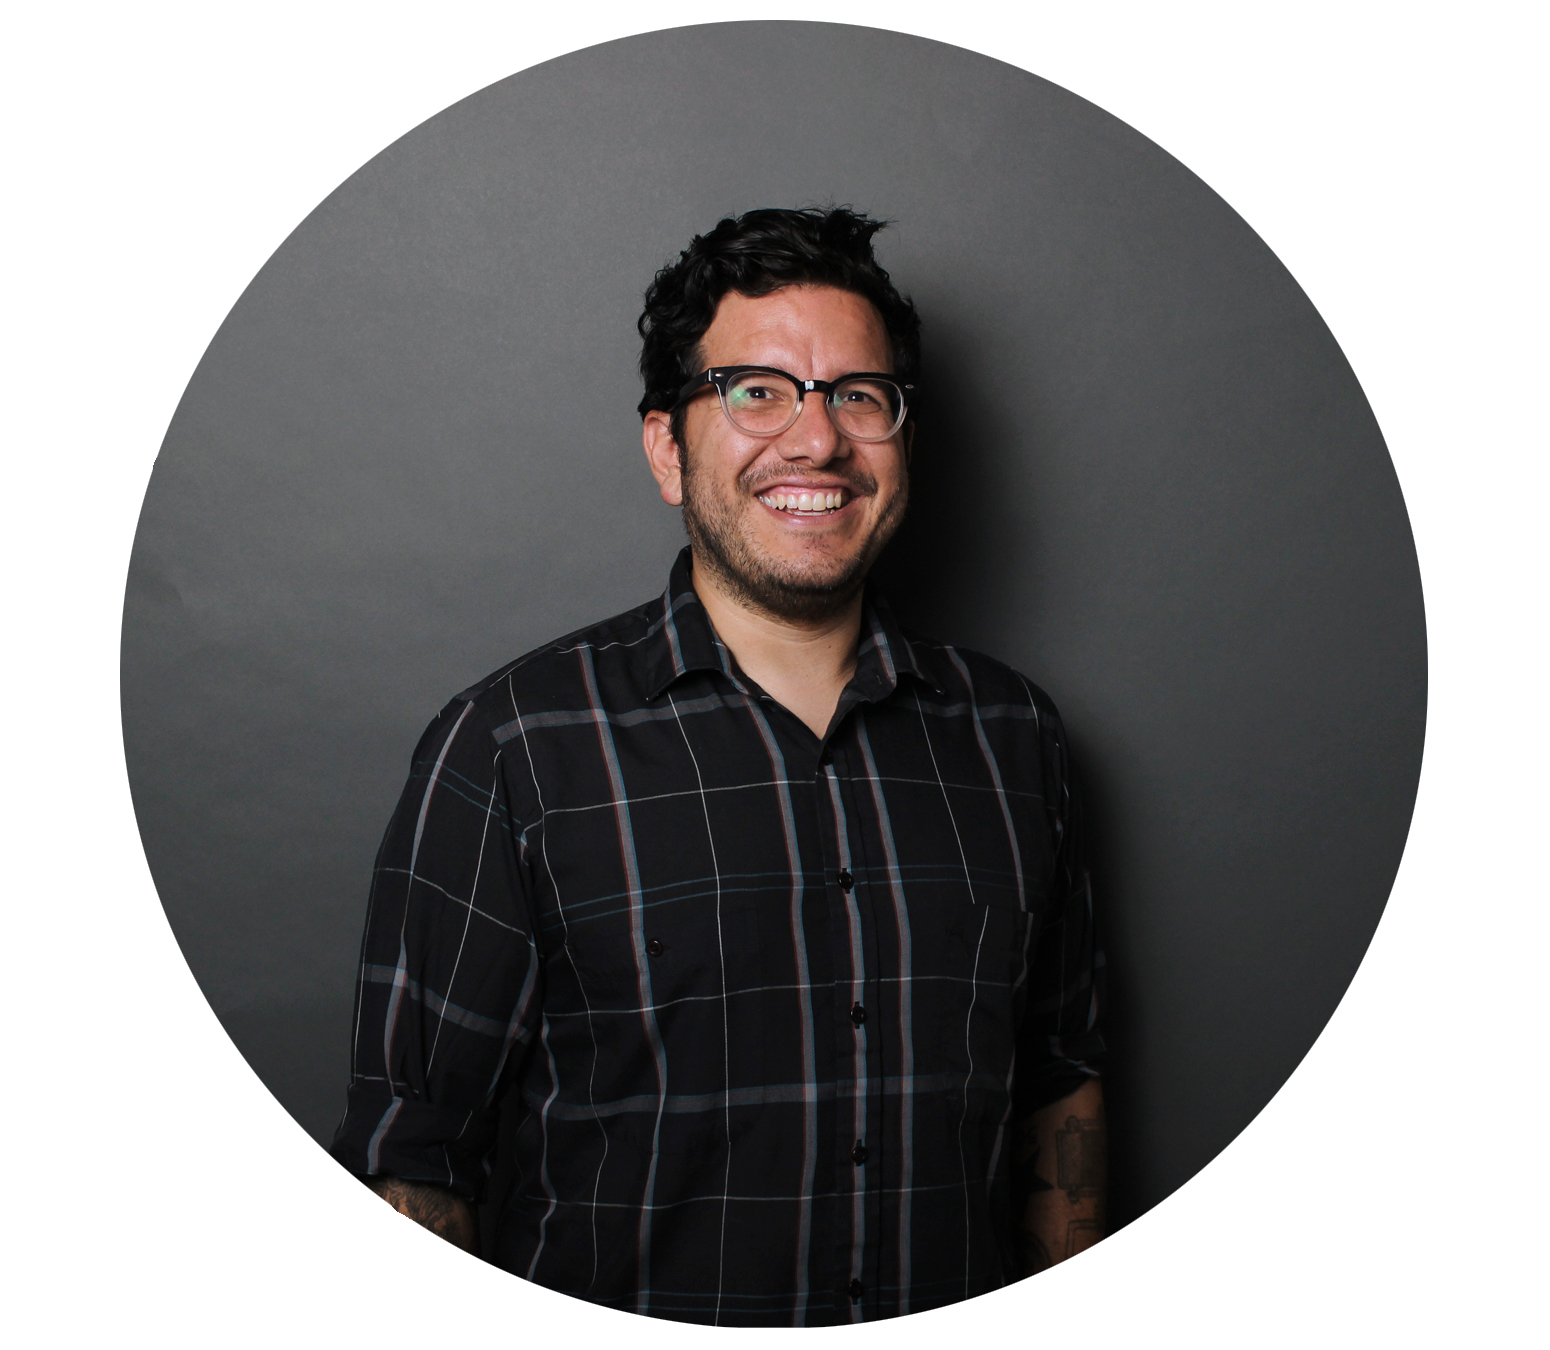 ABRAHAM OROZCO - Scientific Arts Program Director